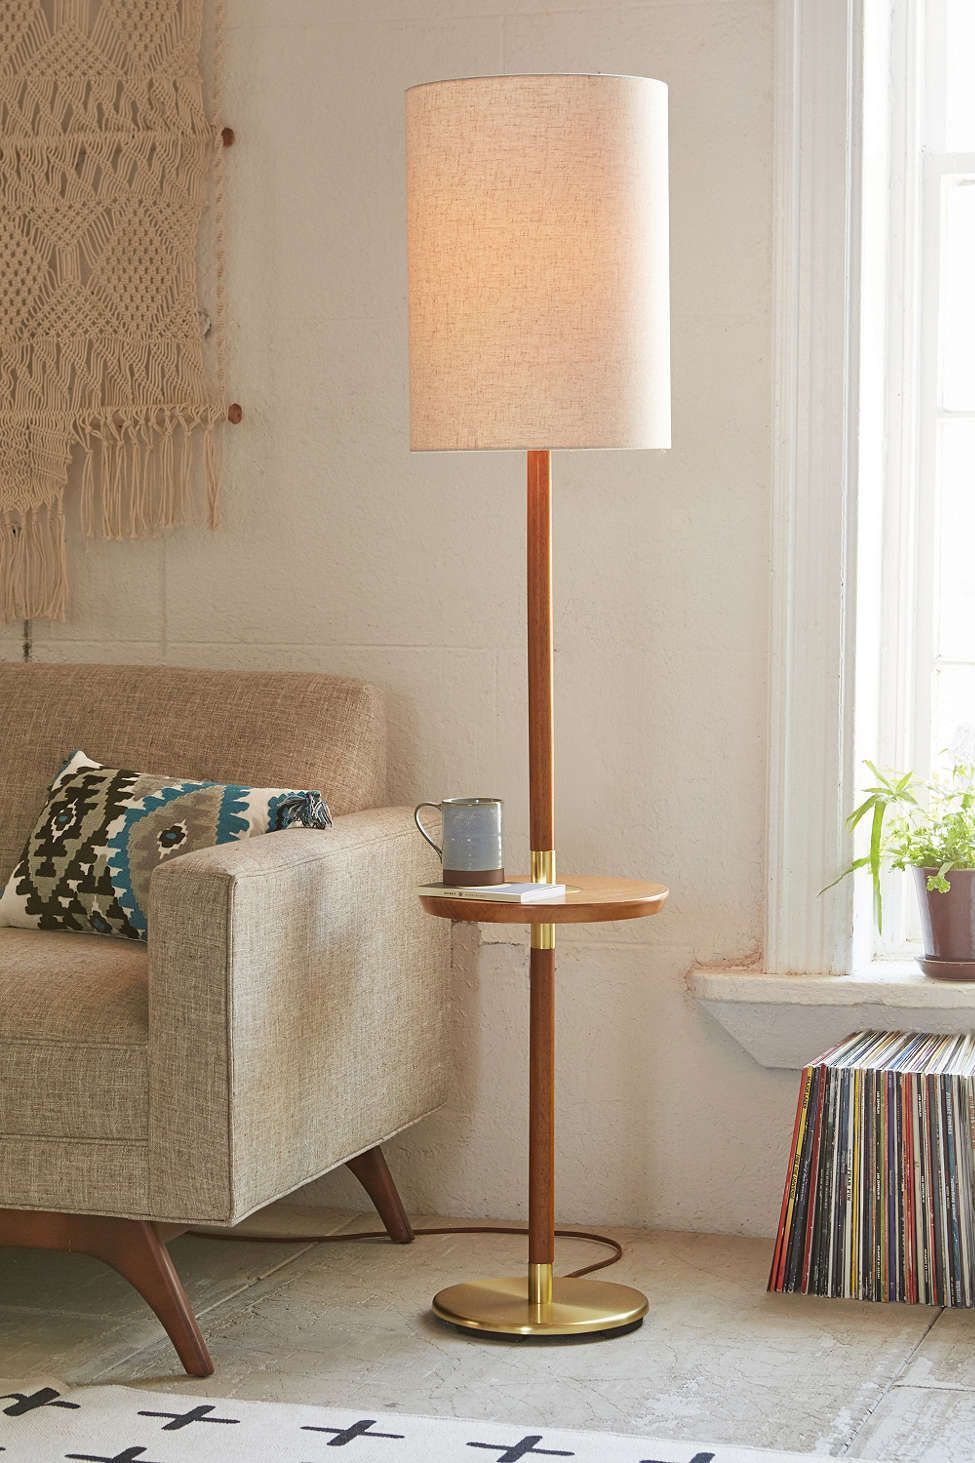 Assembly Home Edda Floor Lamp   Urban Outfitters #floorlamps